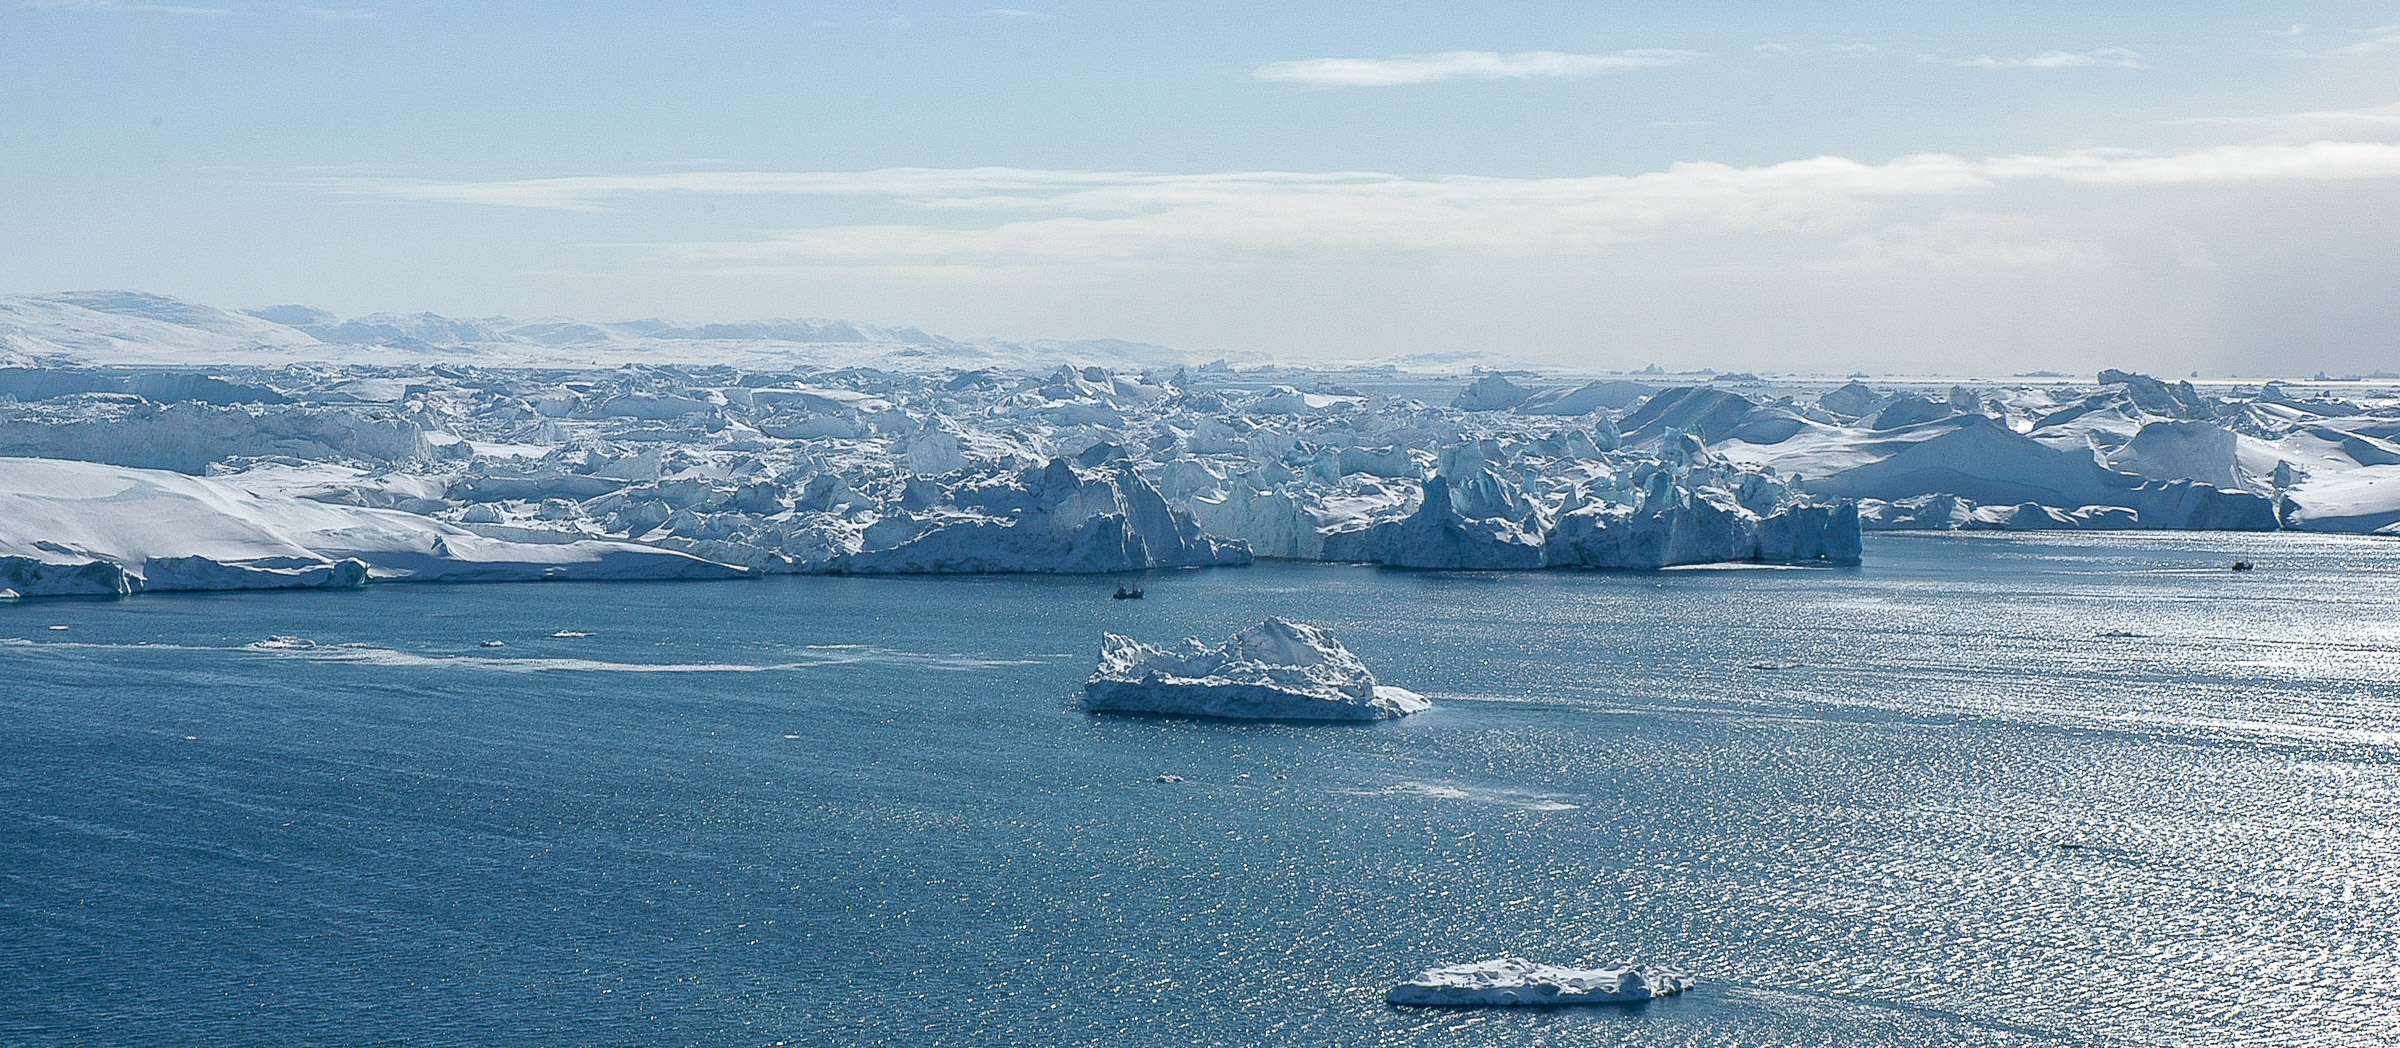 Icebergs in front of the mouth of the Ilulissat icefjord, right beside the town. JONAA©Kristjan Fridriksson